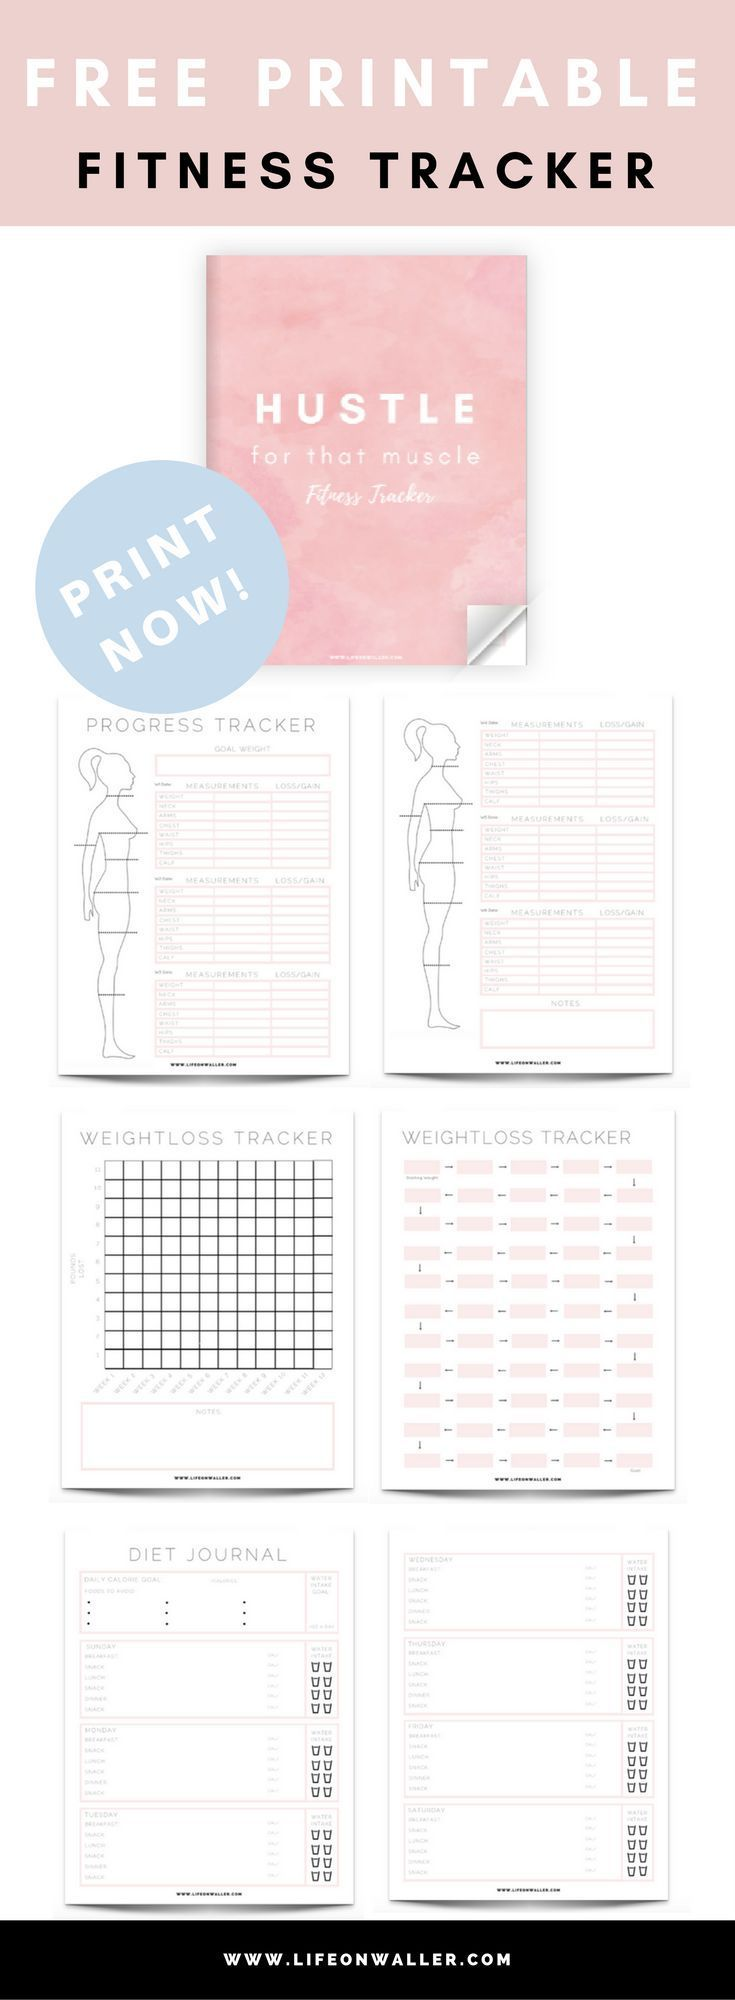 #printable #progress #fitness #tracker #freebie #planner #workout #journal #hustle #weight #using #t...